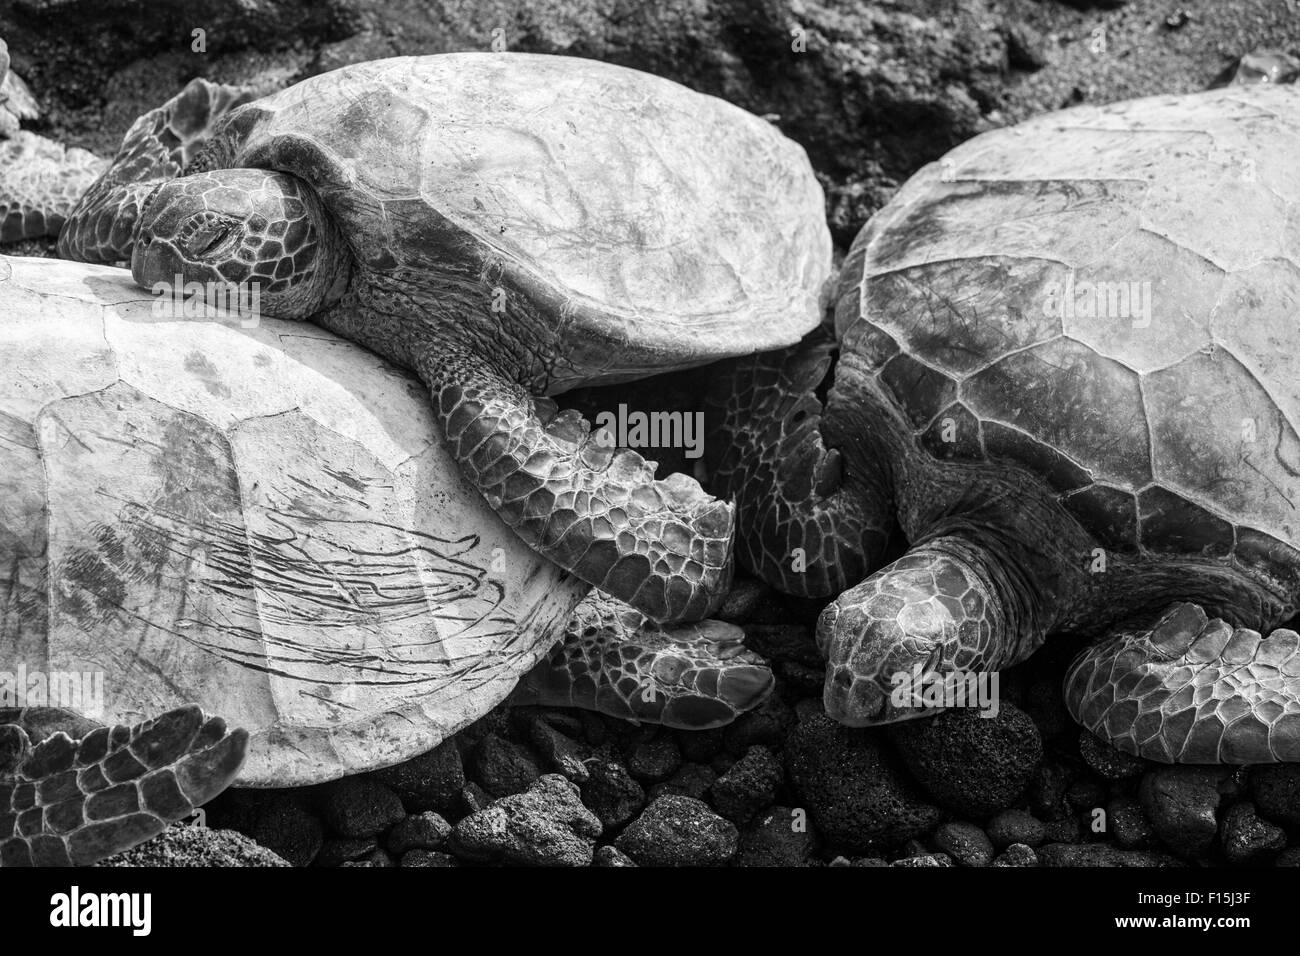 Sea turtles rest in the sun on the beach at Anaehoomalu Bay, Big Island, Hawaii - Stock Image